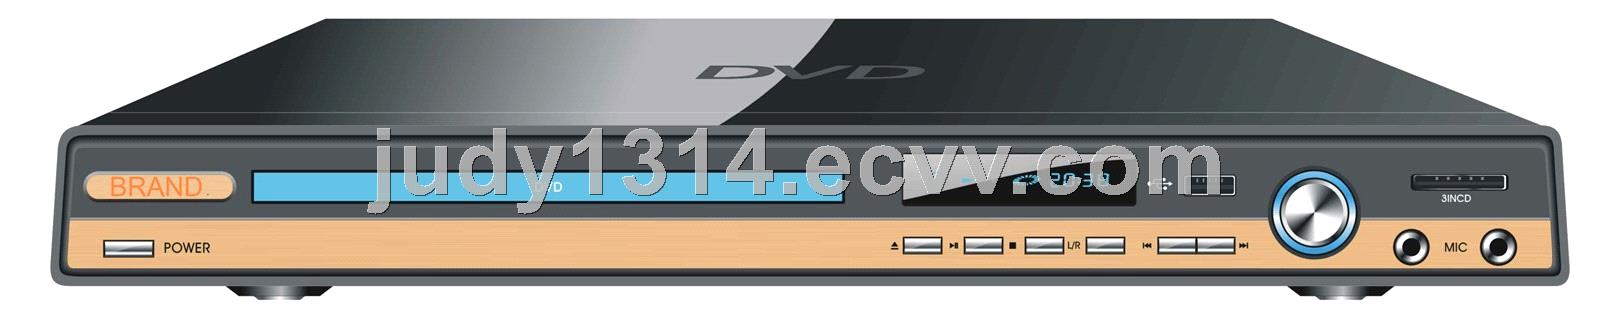 Big Desktop DVD Player with USB FM